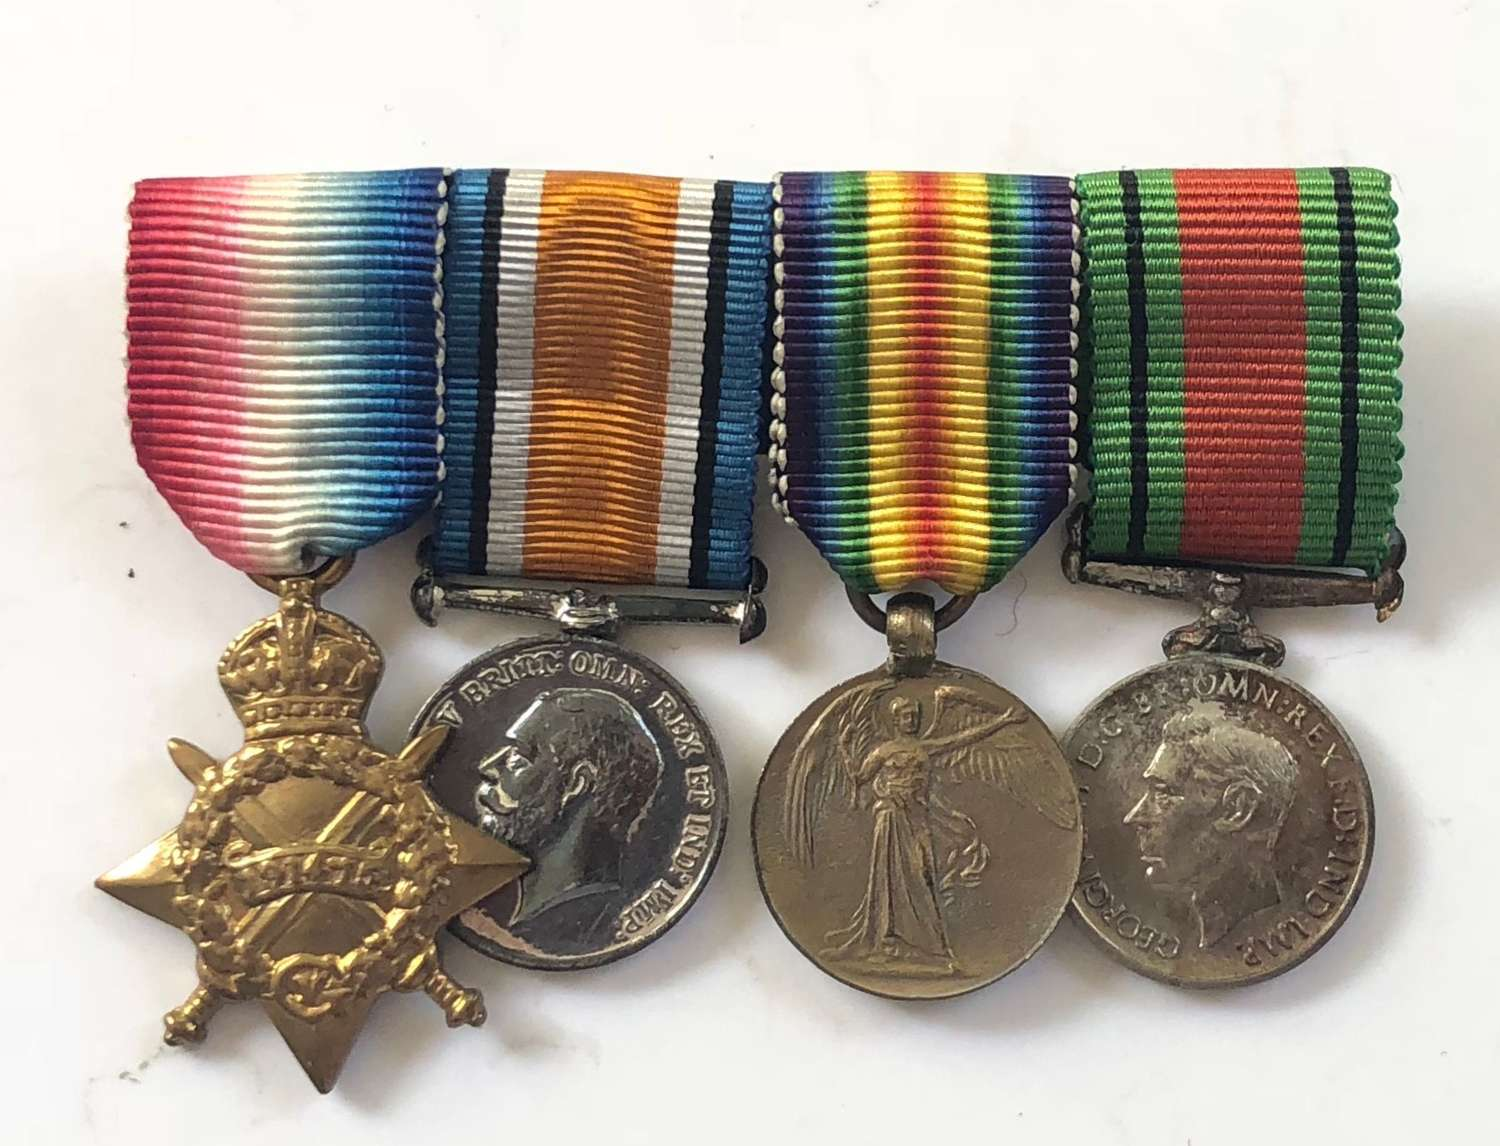 WW1 Miniature Medal Group of Four Medals.